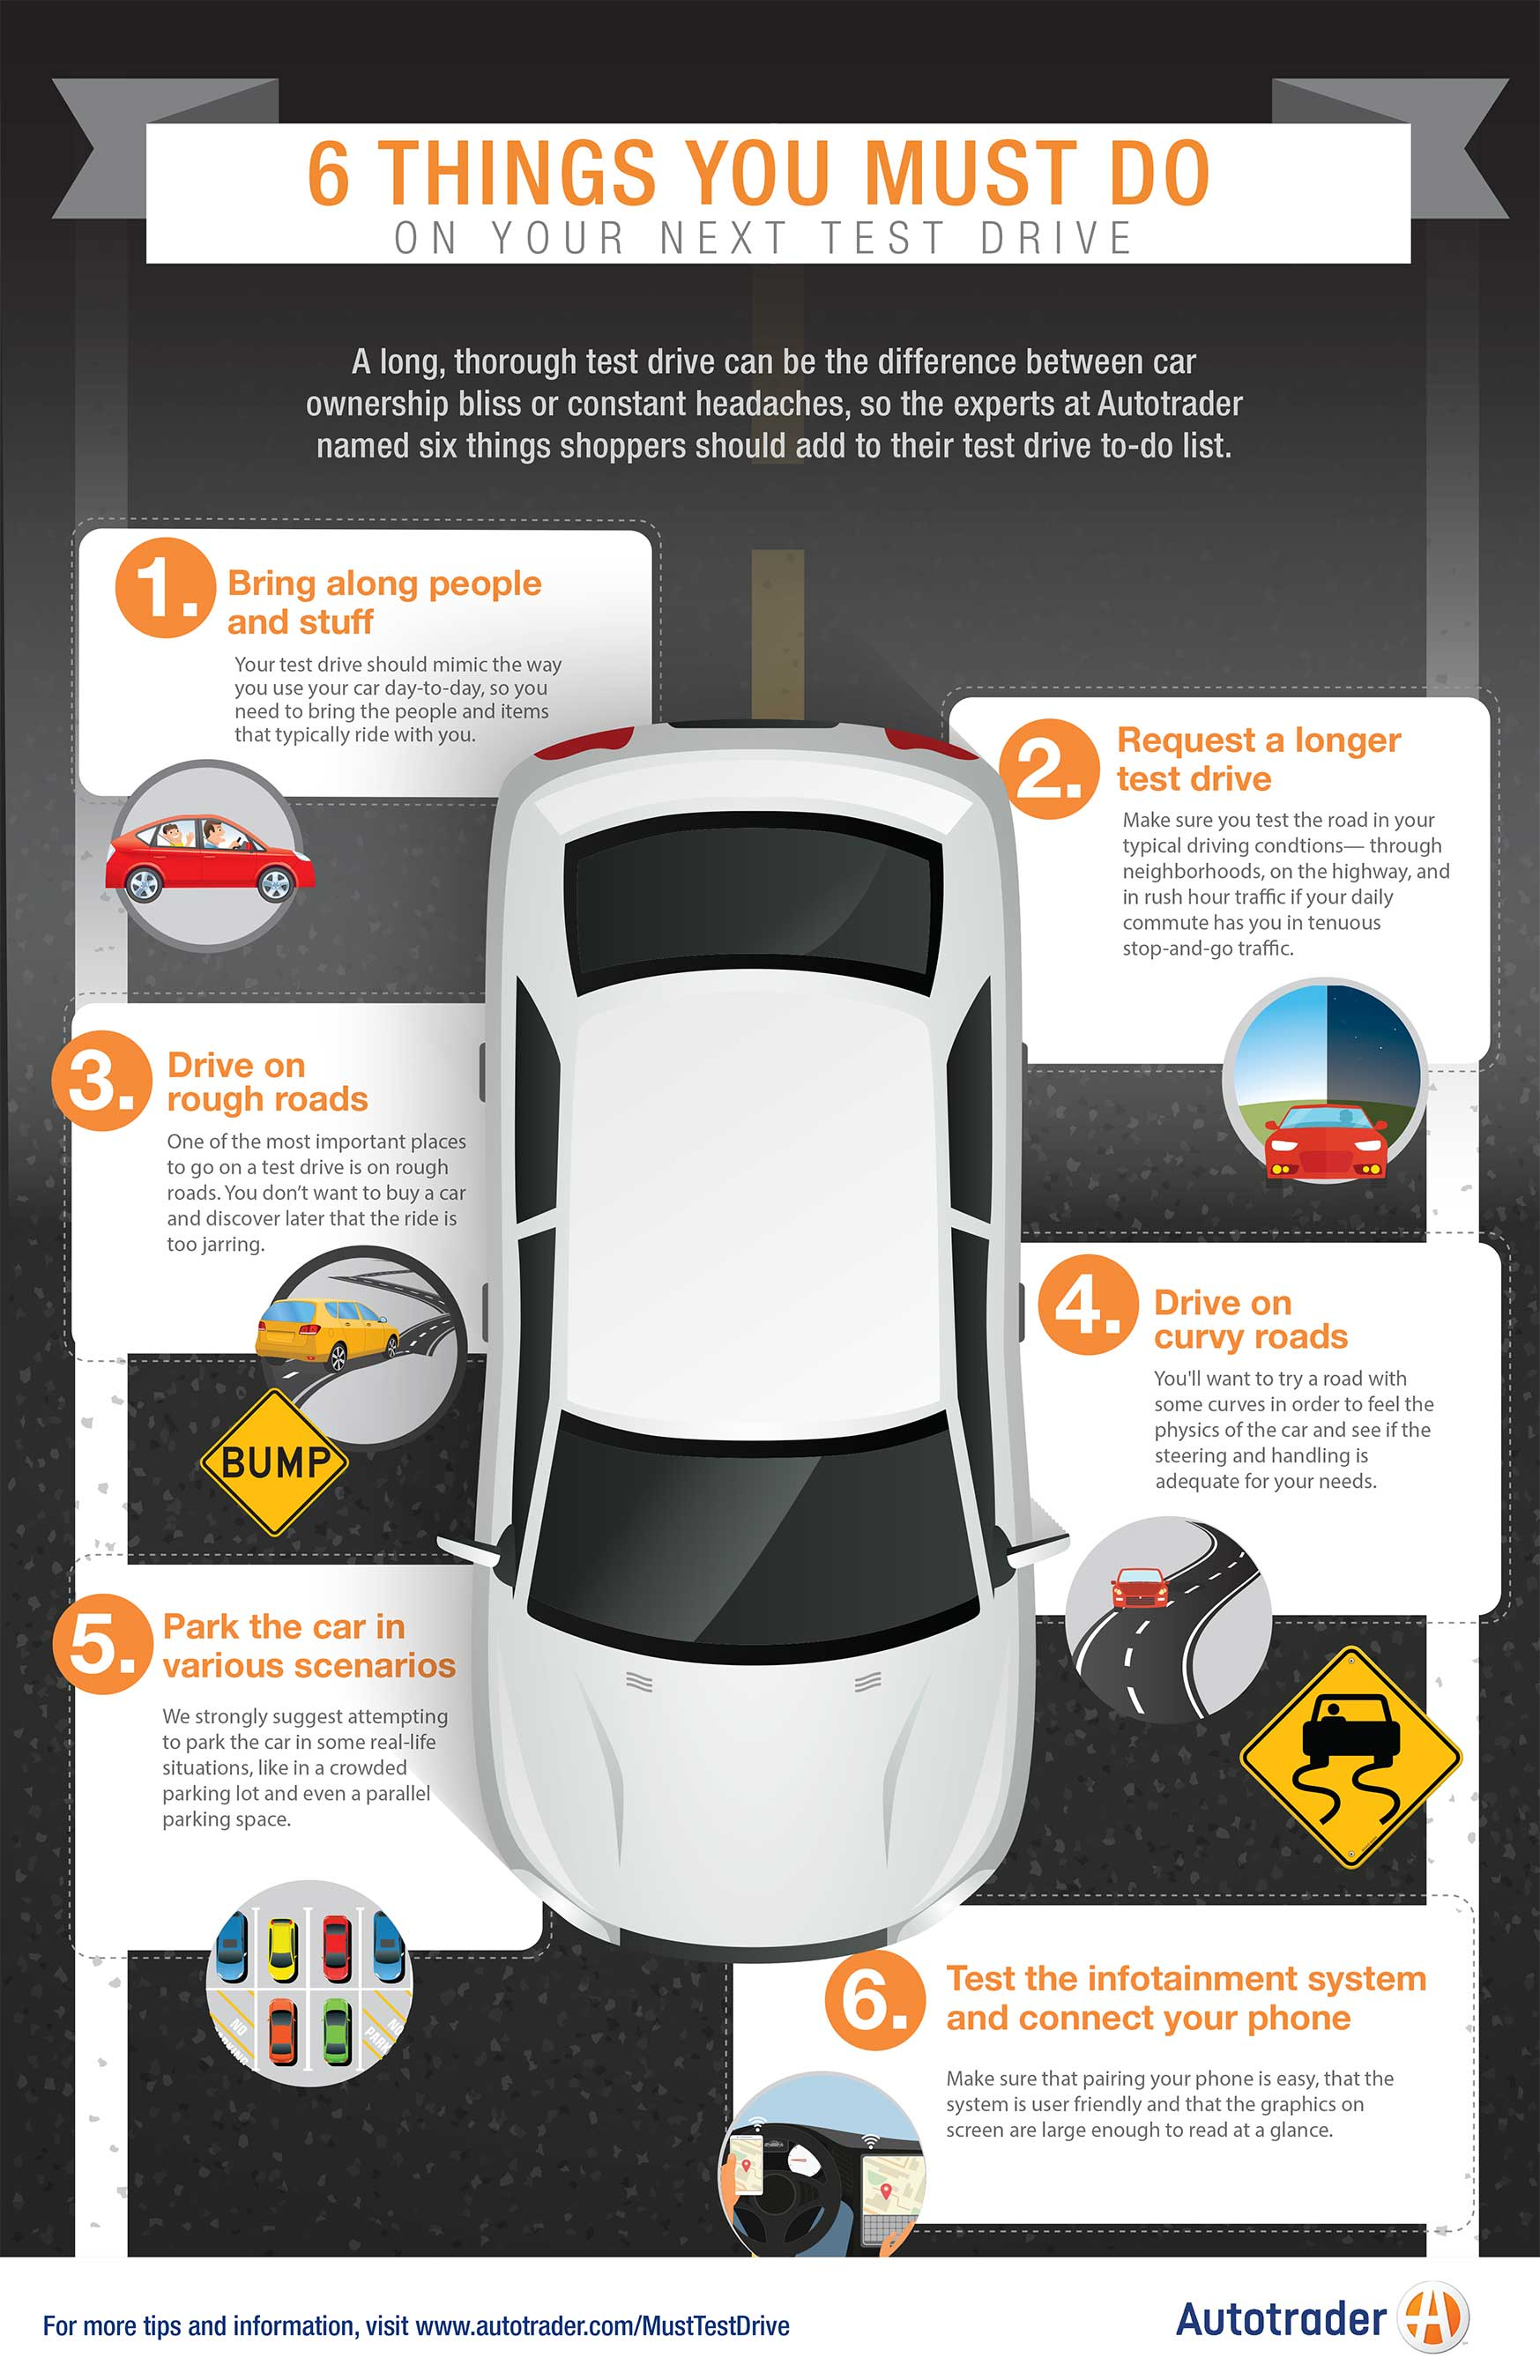 6 things you must do on your next test drive